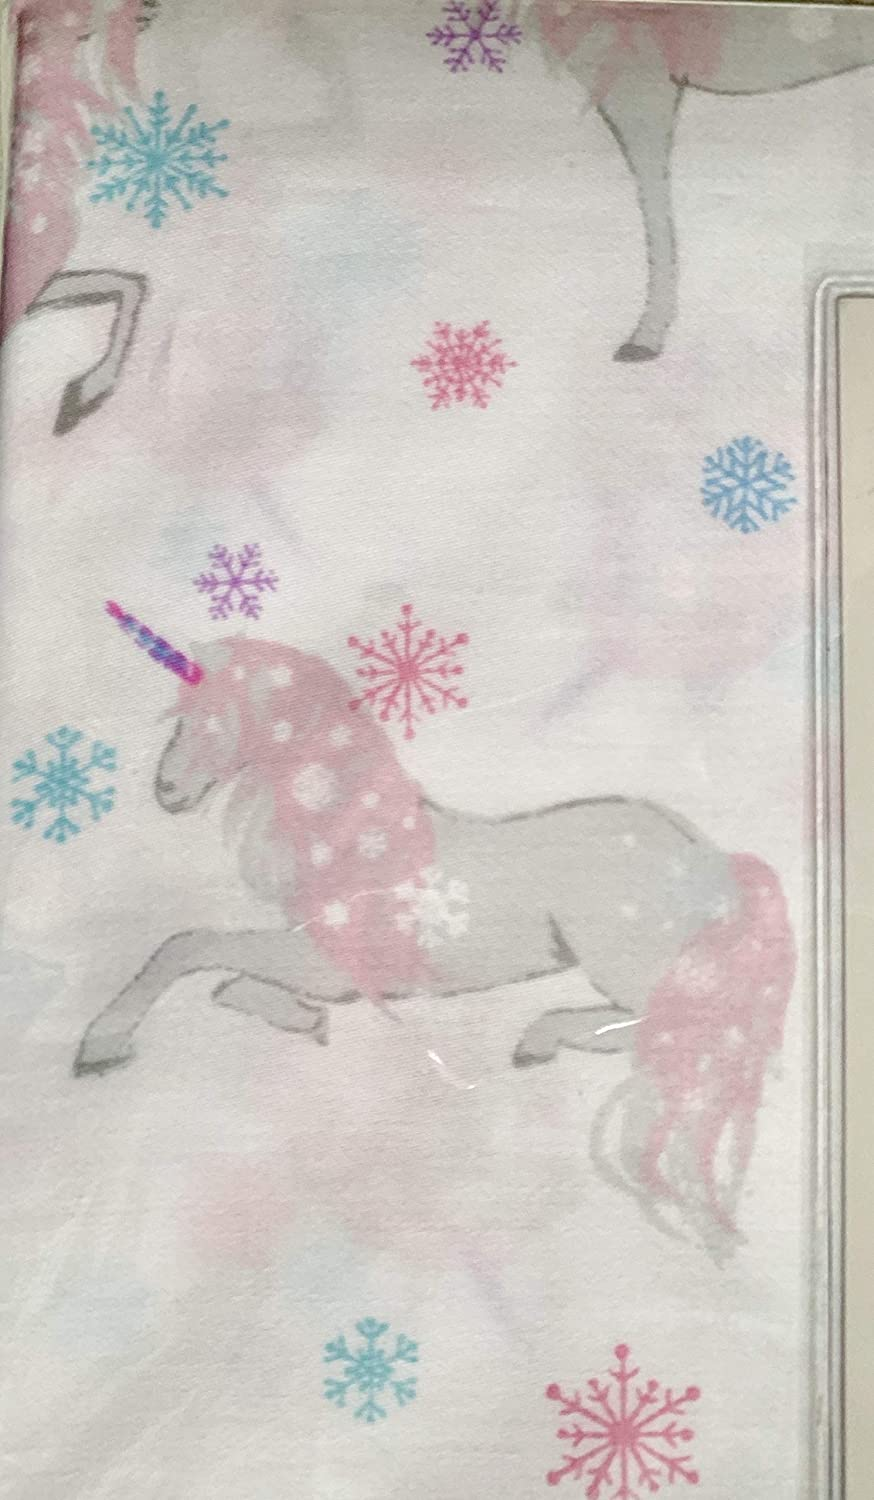 Hillcrest Unicorns and Snowflakes Winter Sheet Set Twin